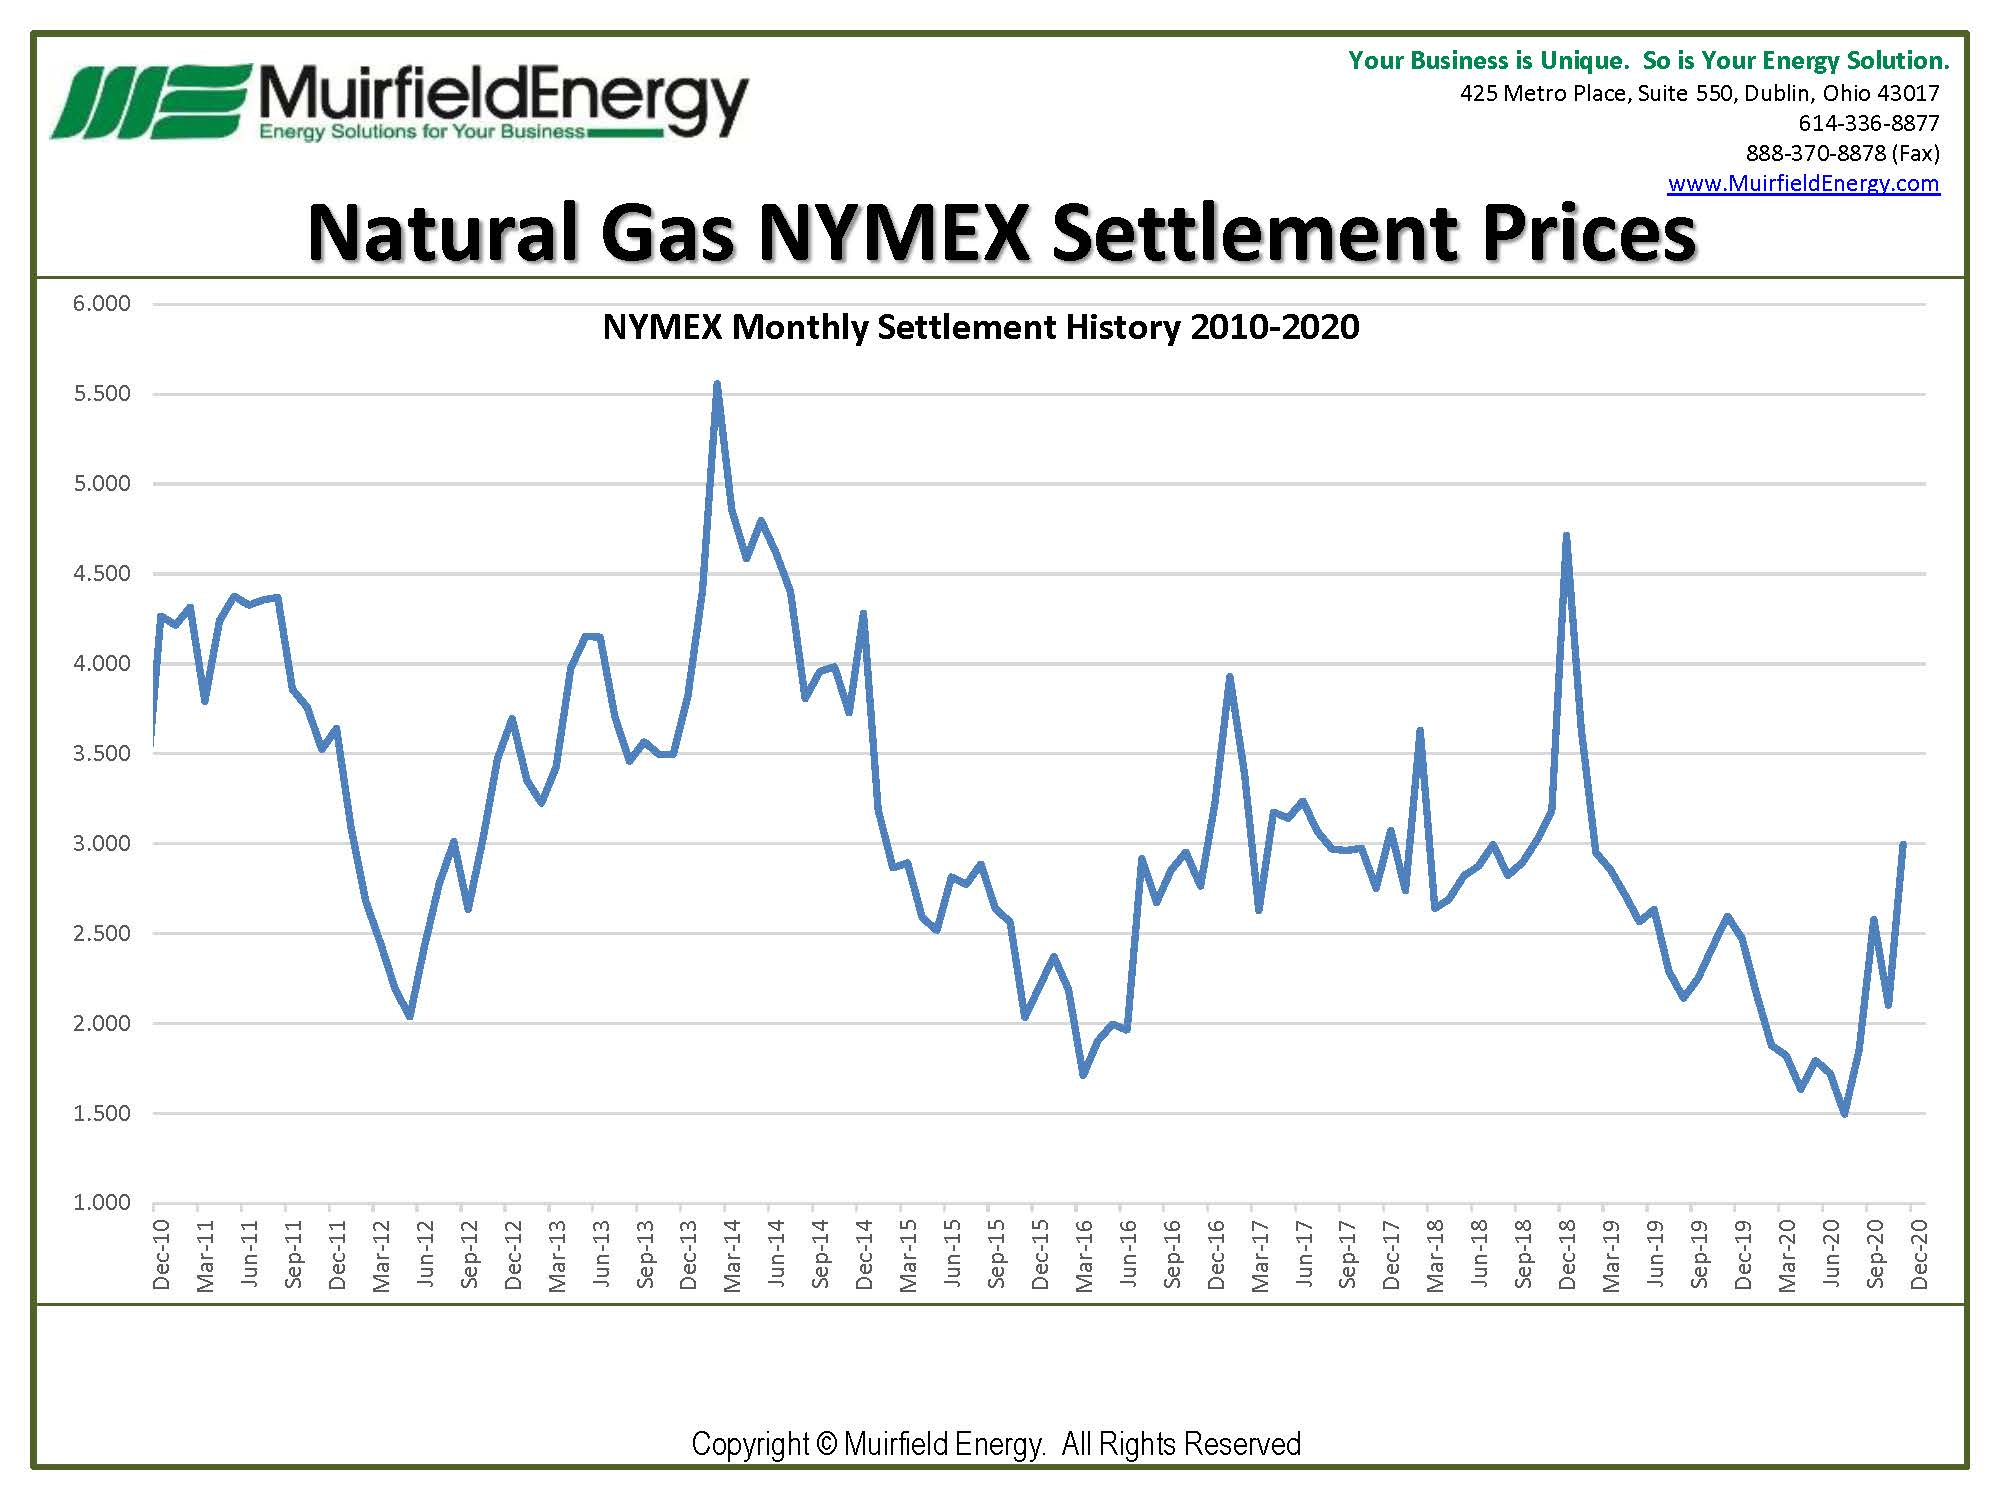 NYMEX-Natural-Gas-Futures-for-December-2020-settled-at-$2.896